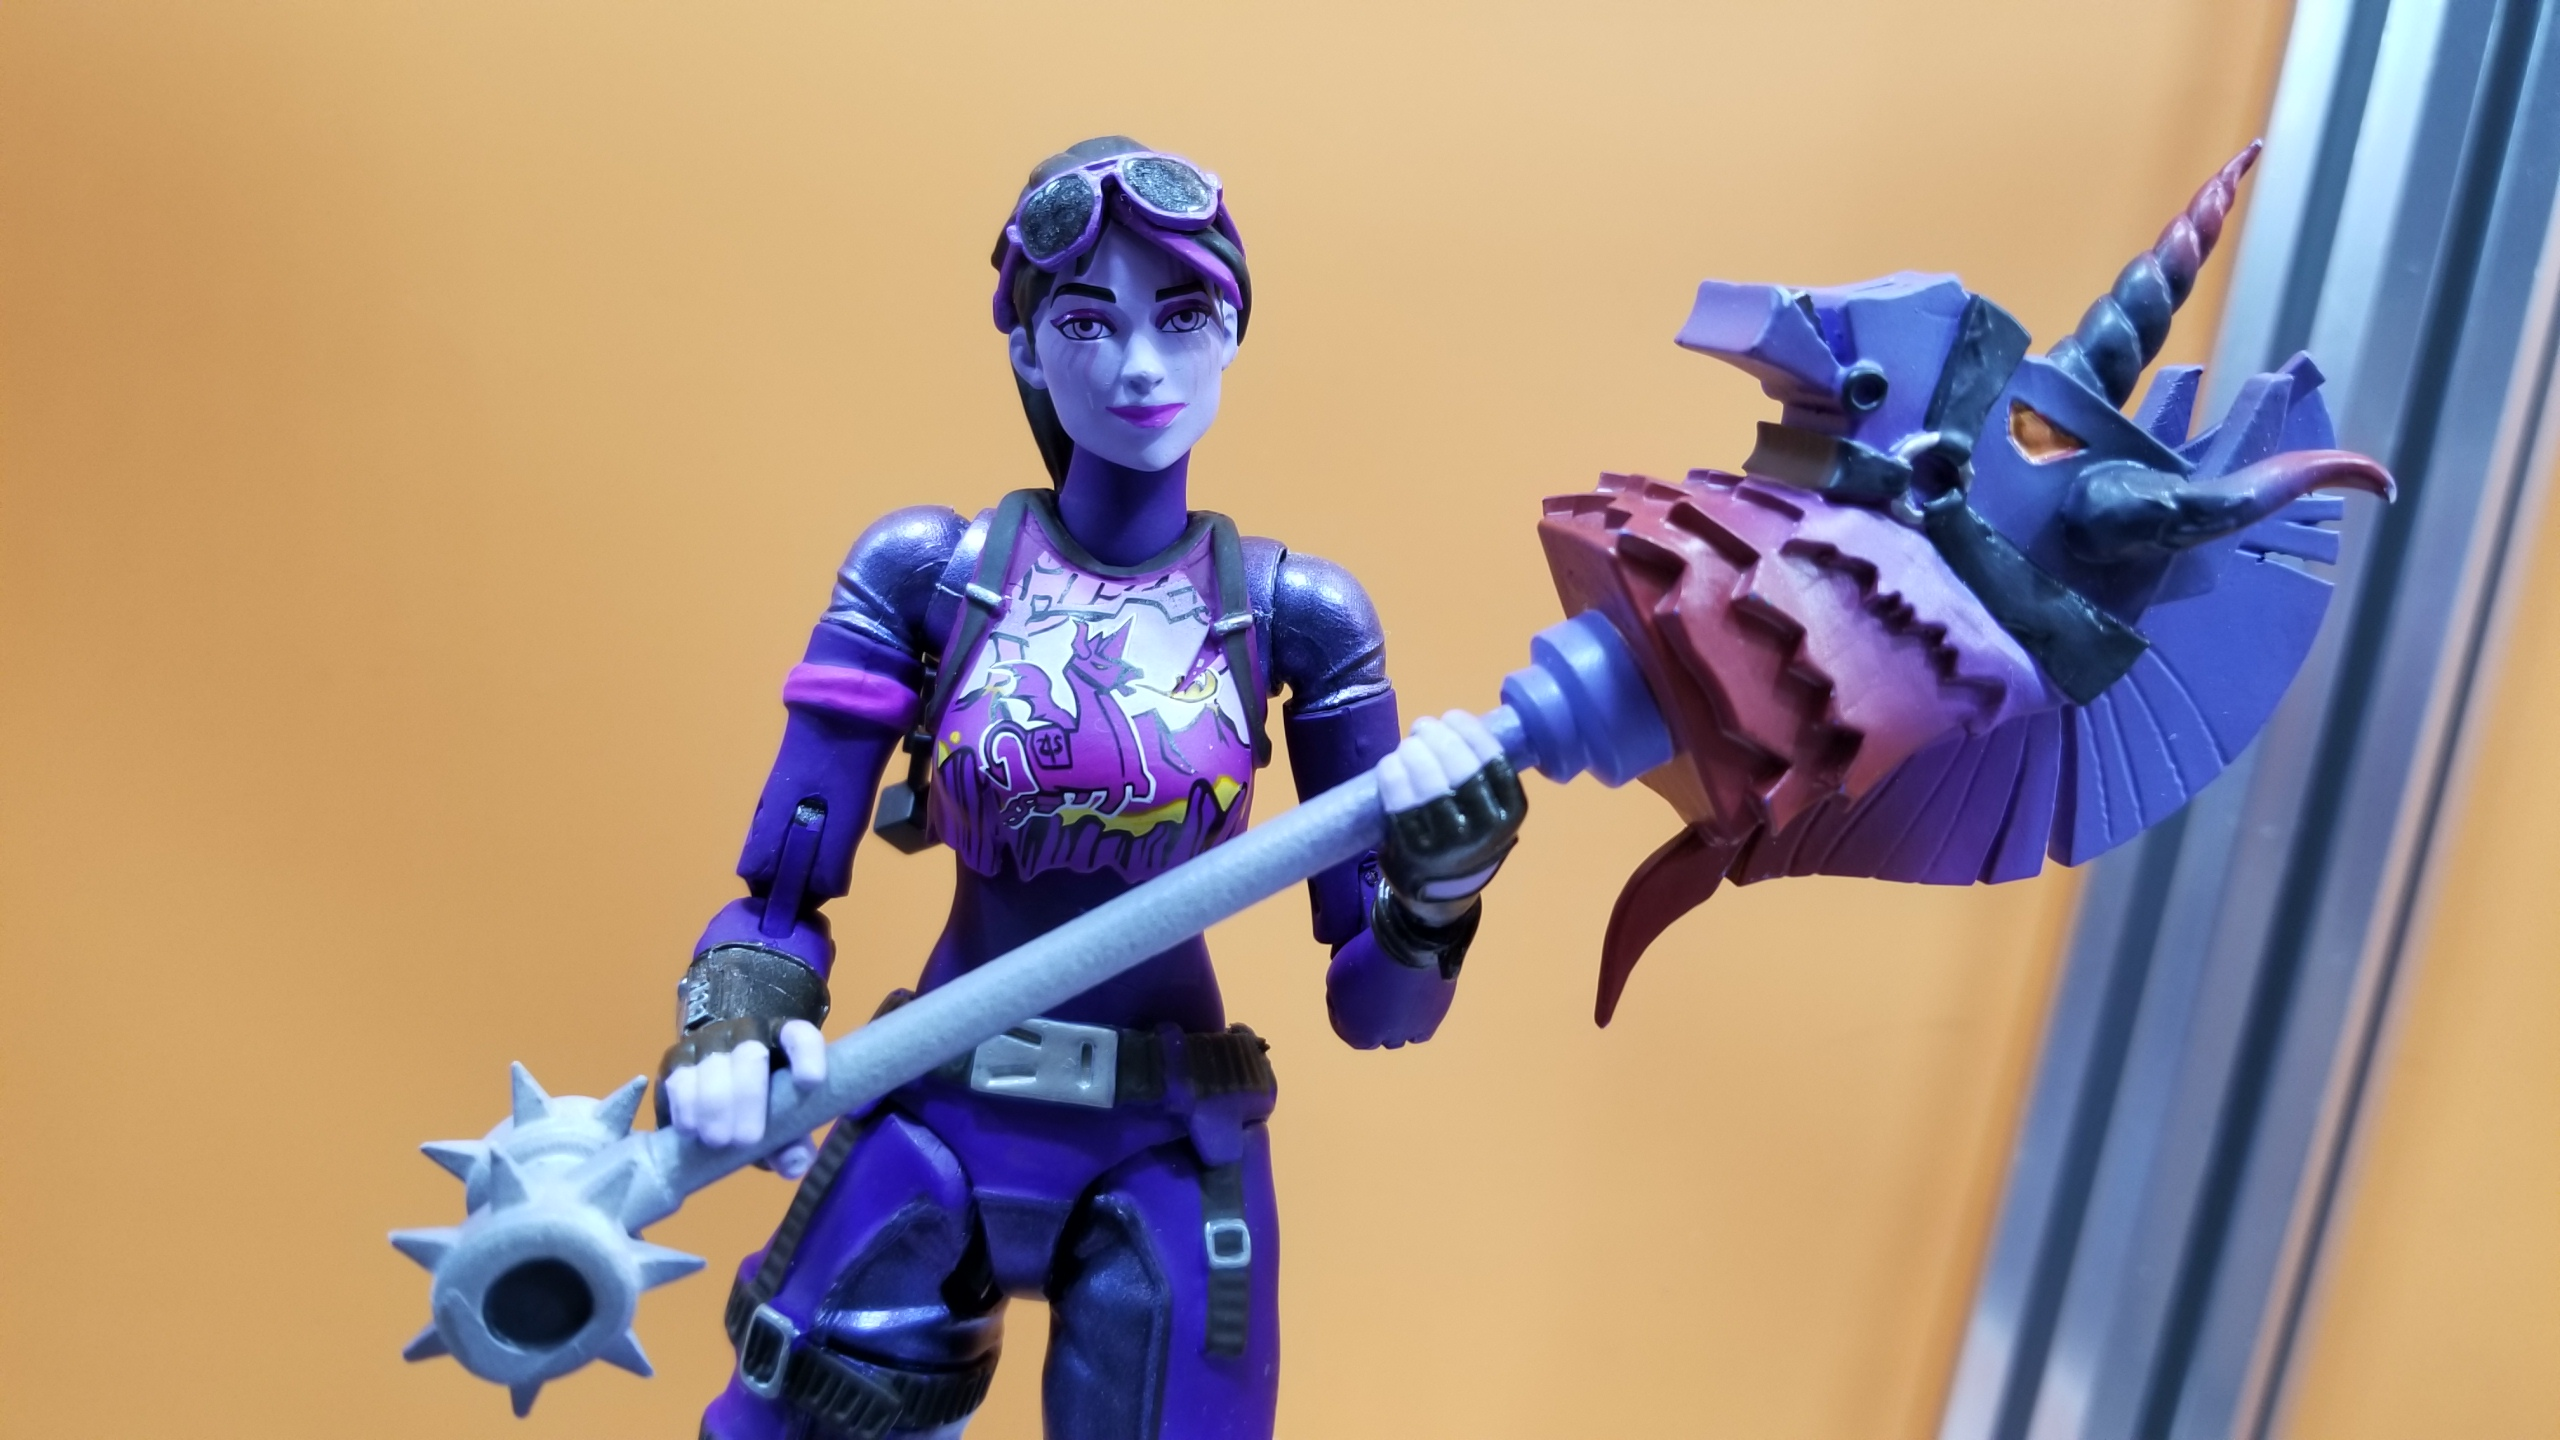 Toy Fair '19: McFarlane Toys Booth Pics and Info